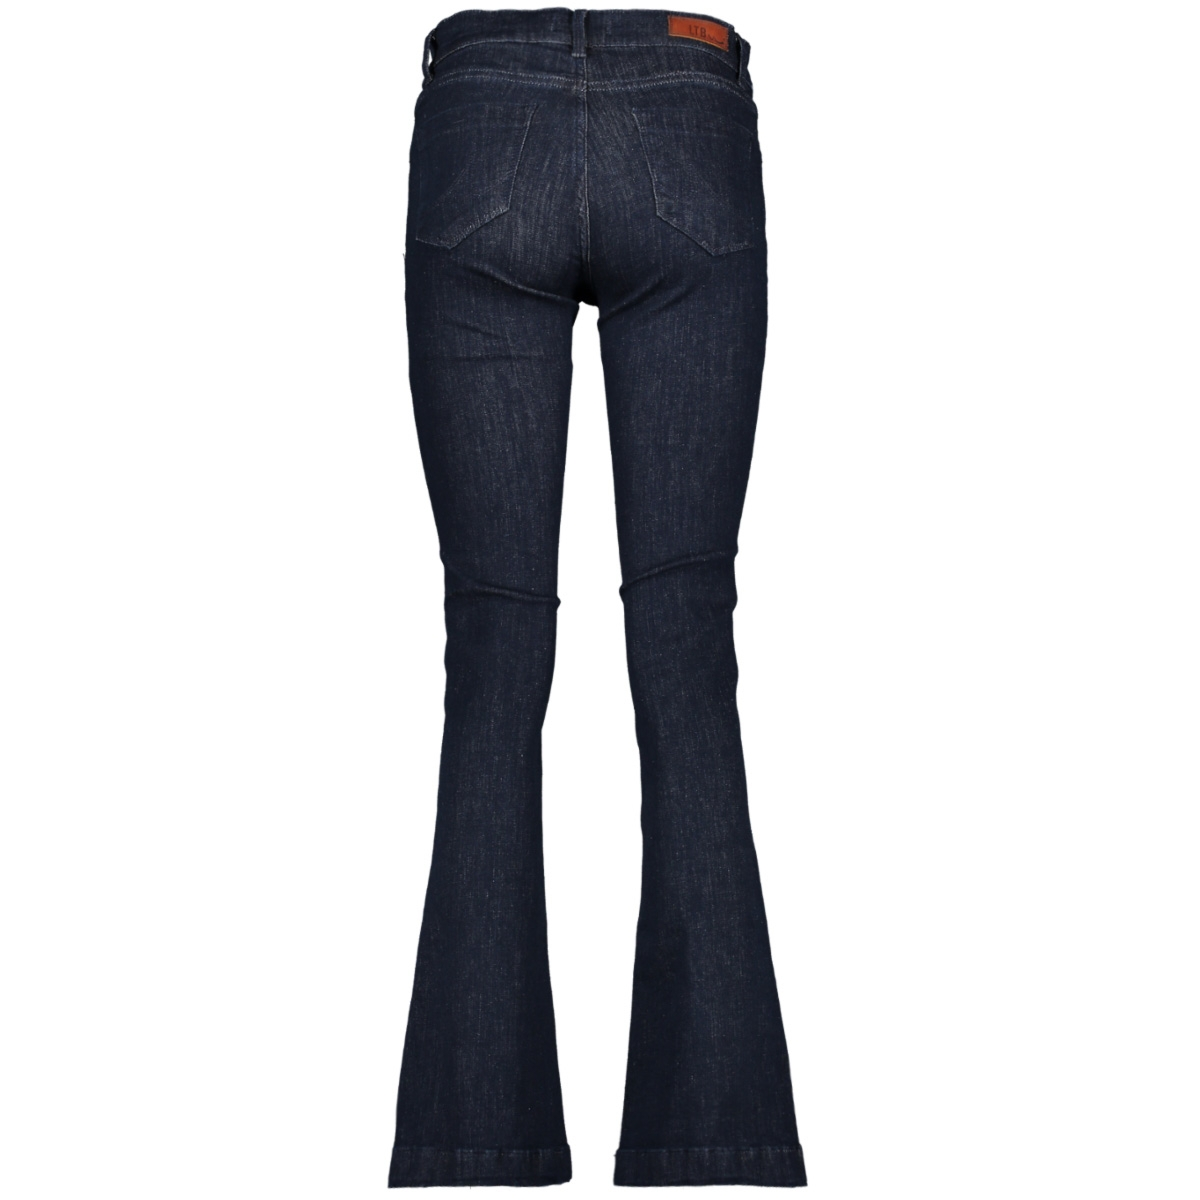 fallon 51367 14903 ltb jeans 082 rinsed wash